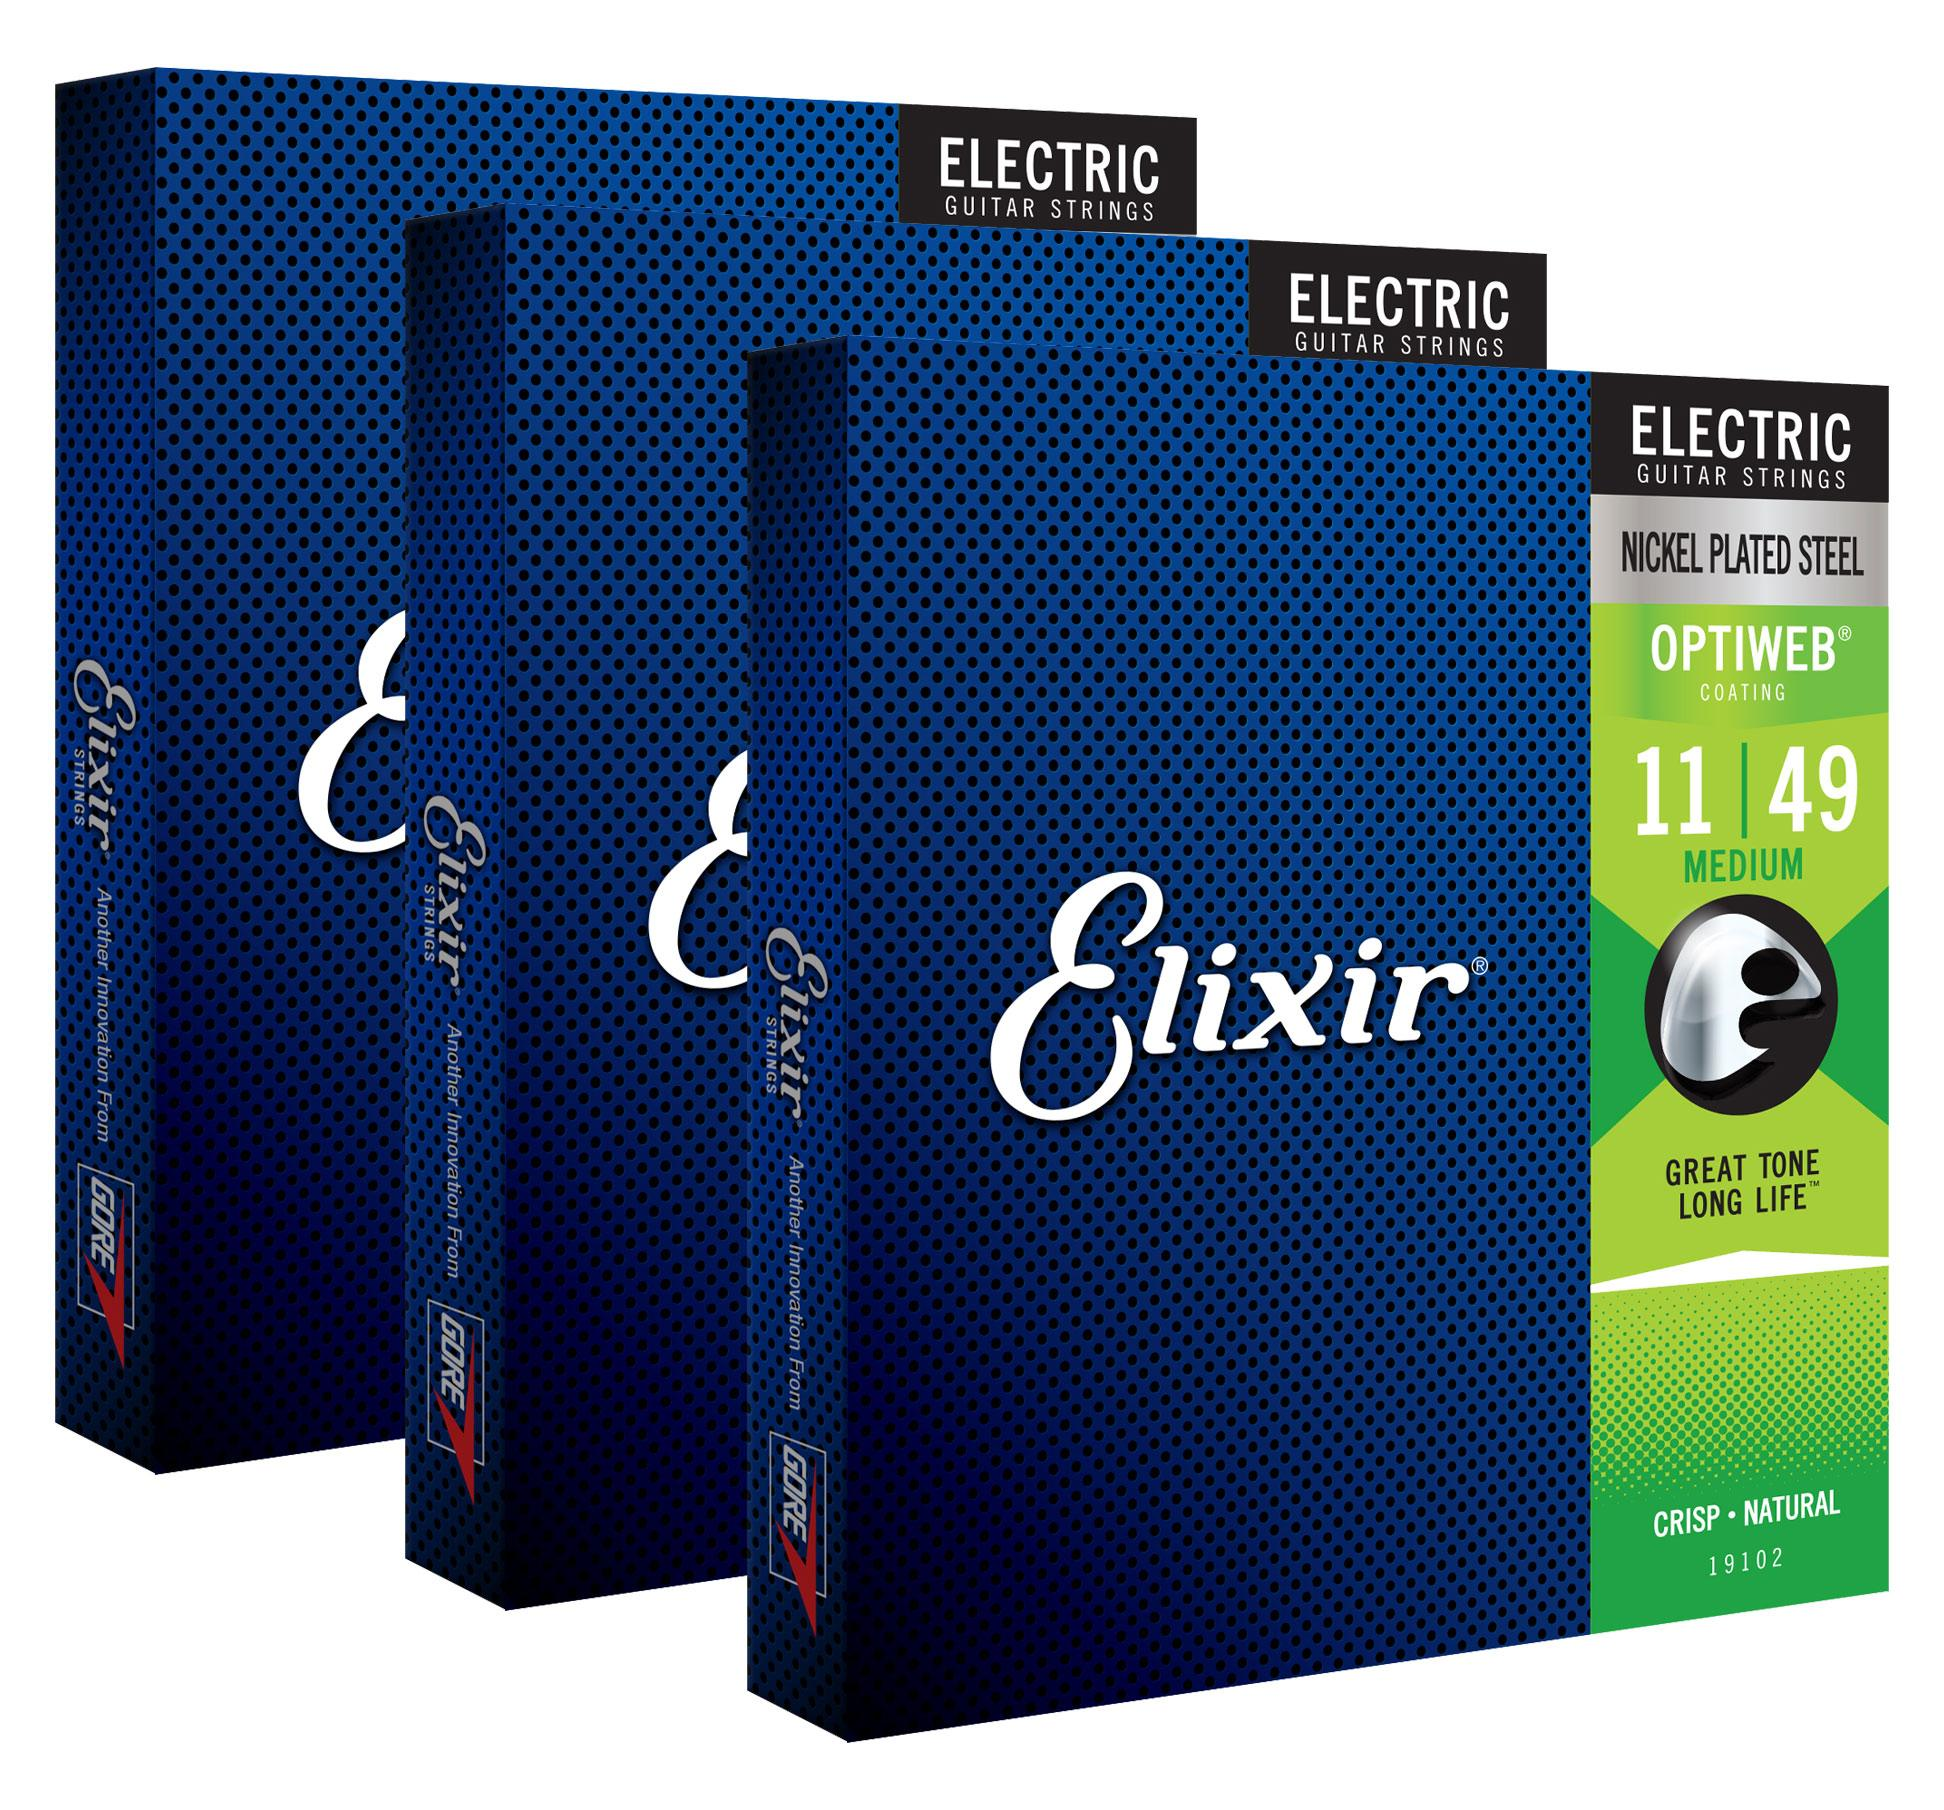 Saiten - Elixir 19102 Electric Optiweb Medium 3er Set - Onlineshop Musikhaus Kirstein